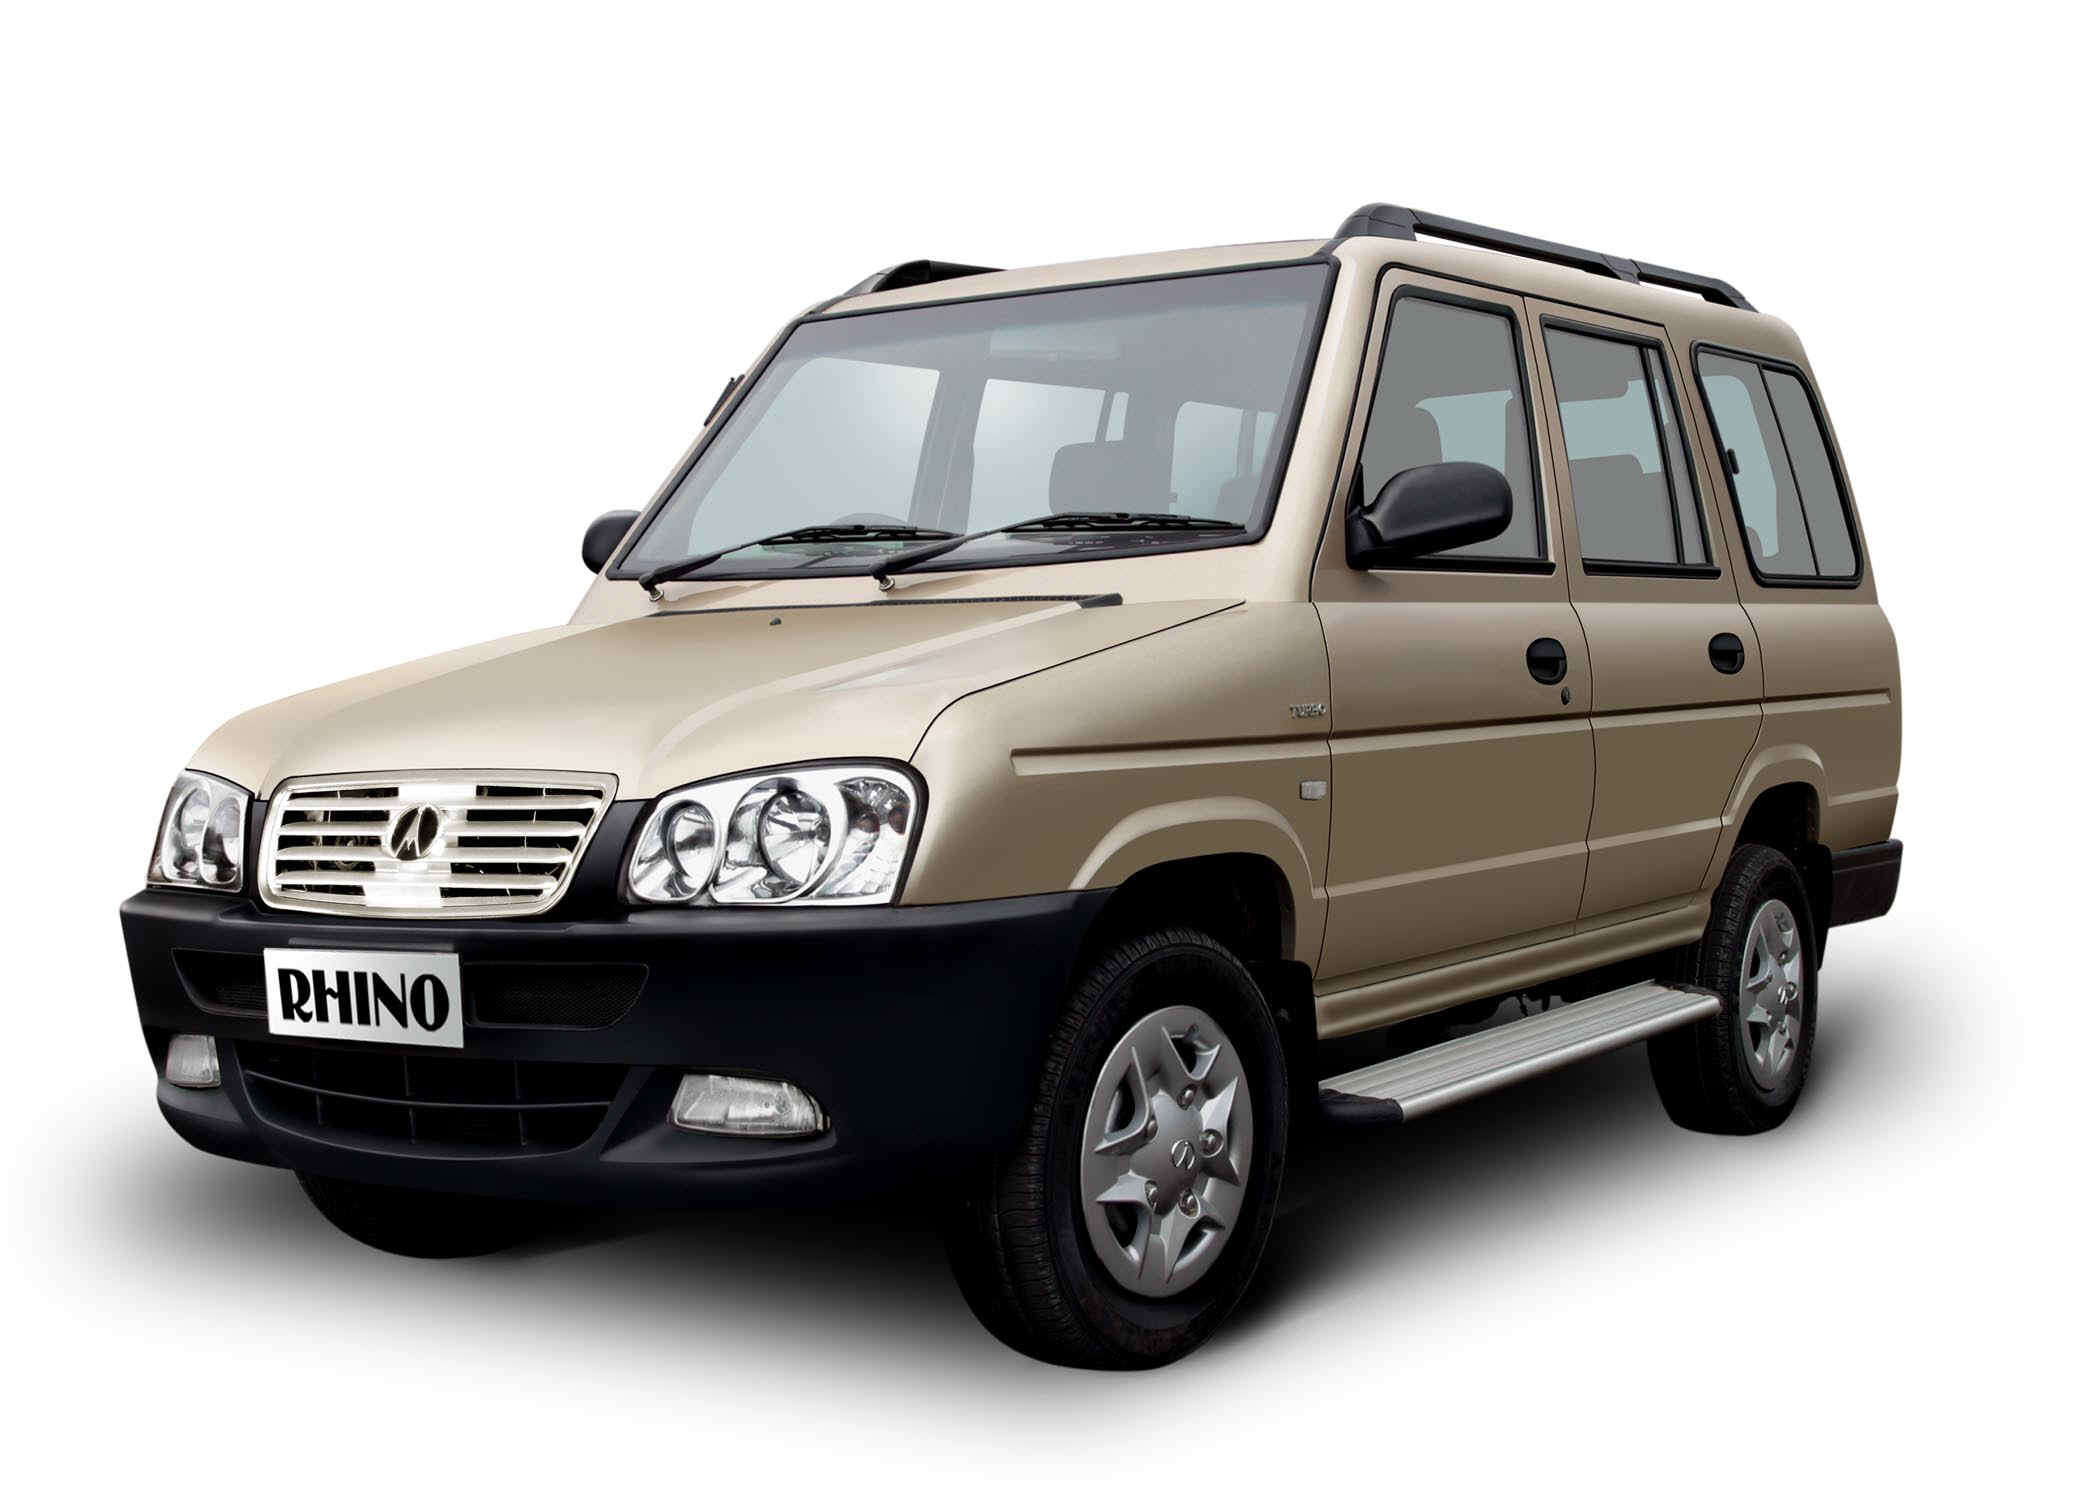 Toyota Qualis Car Rental In Chennai Chennai Car Rental Service